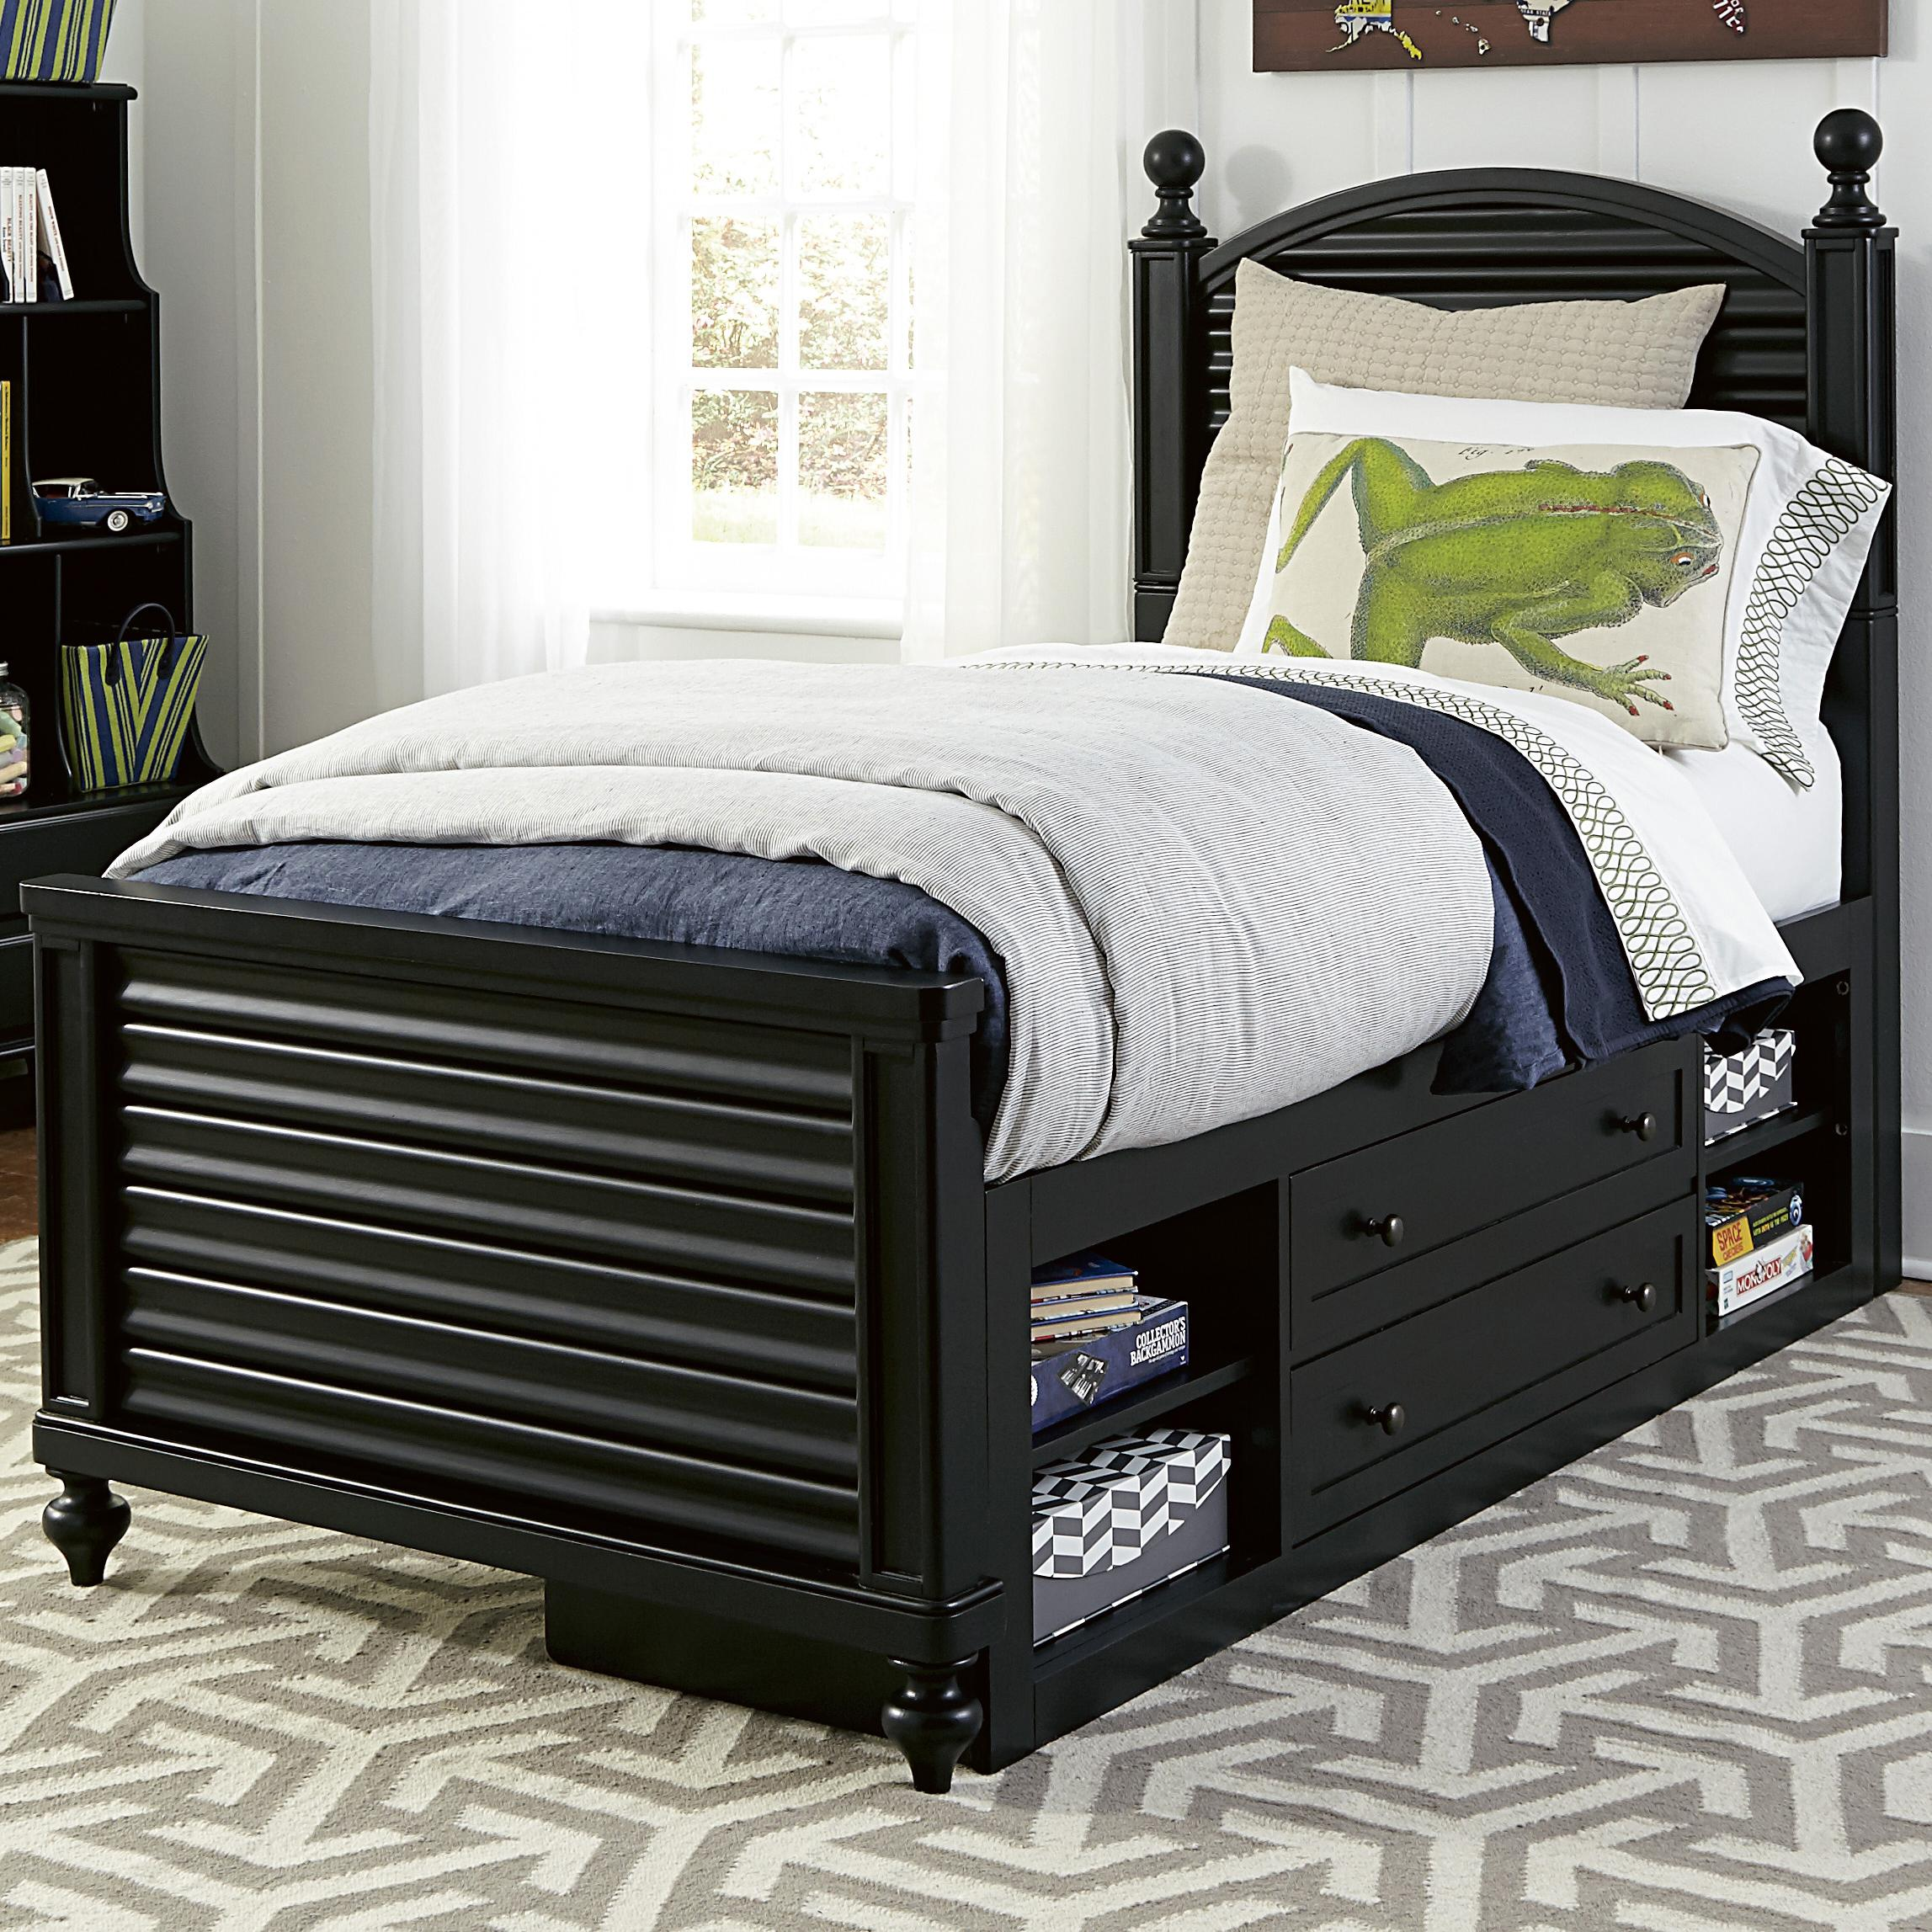 Smartstuff Black and White Twin Bed - Item Number: 437B038+061